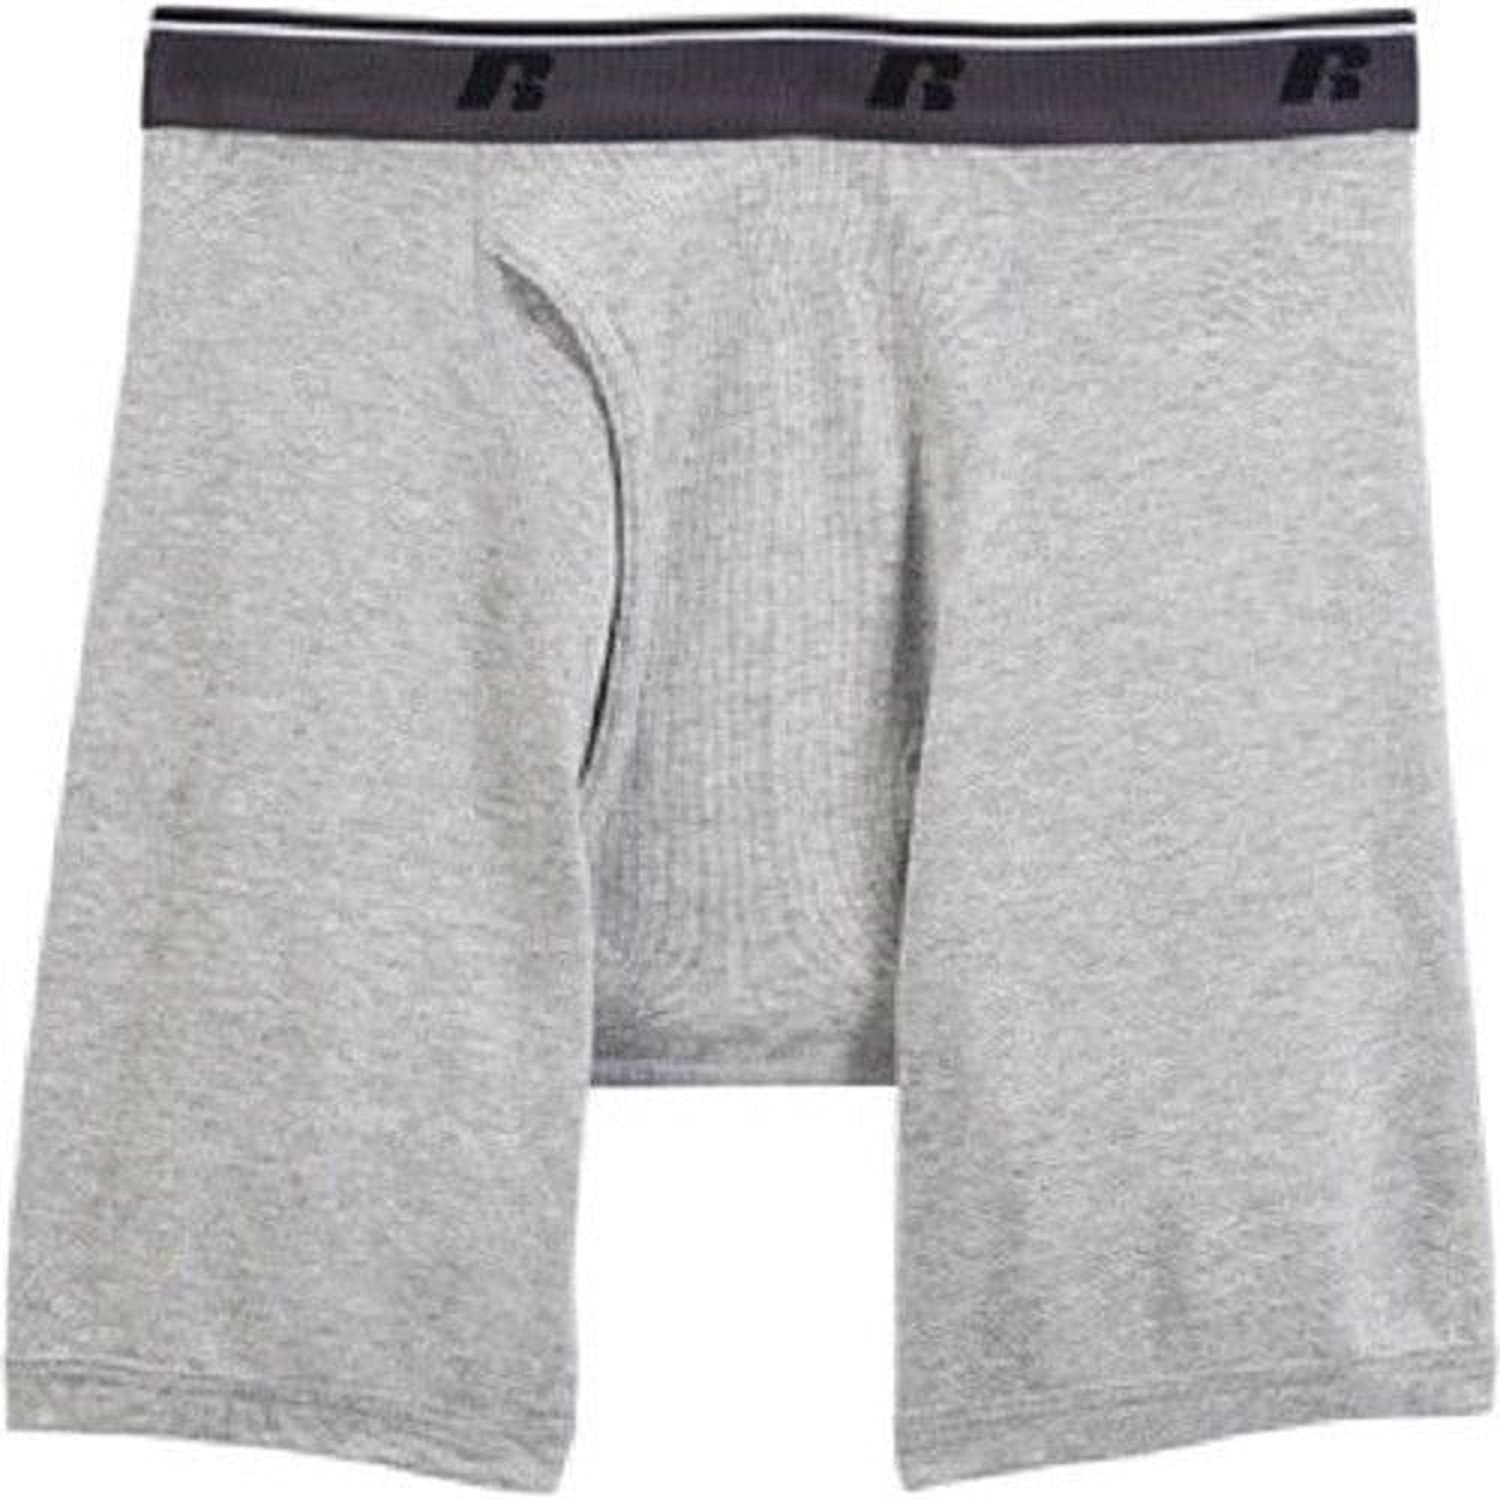 Russell Mens Comfort Performance 3-pk Boxer Briefs (Small - XX-Large)